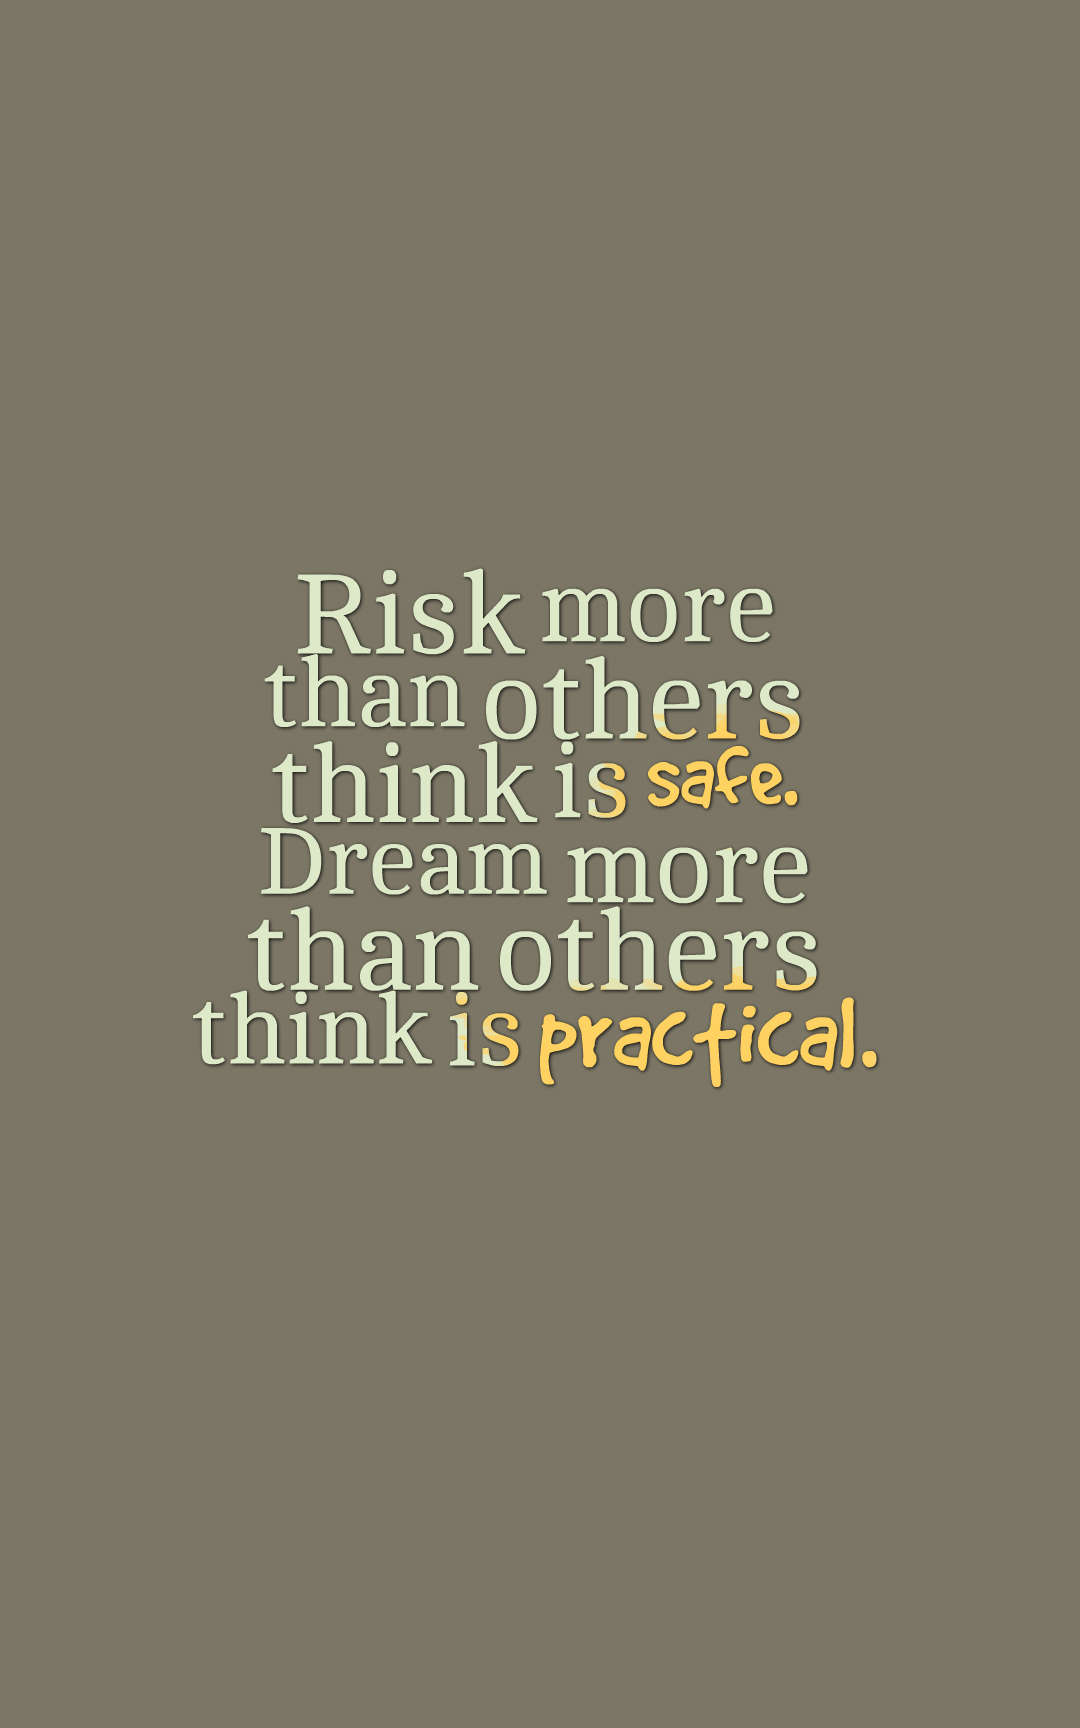 https://quotescover.com/wp-content/uploads/quotes-Risk-more-than-other.jpg